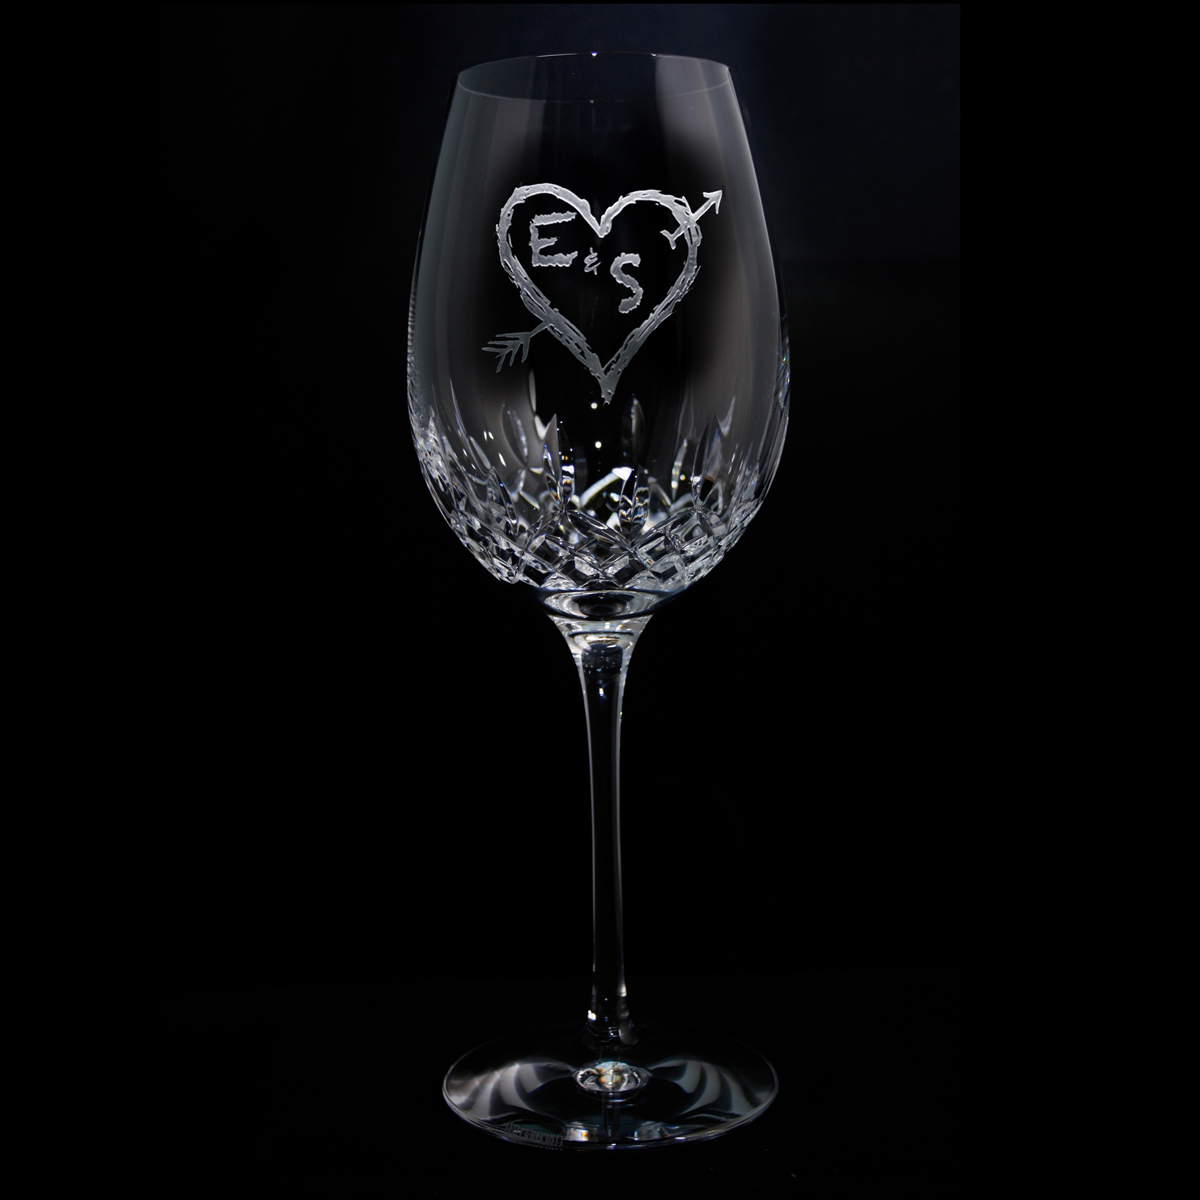 waterford wedding gift wine glass personalized initials heart